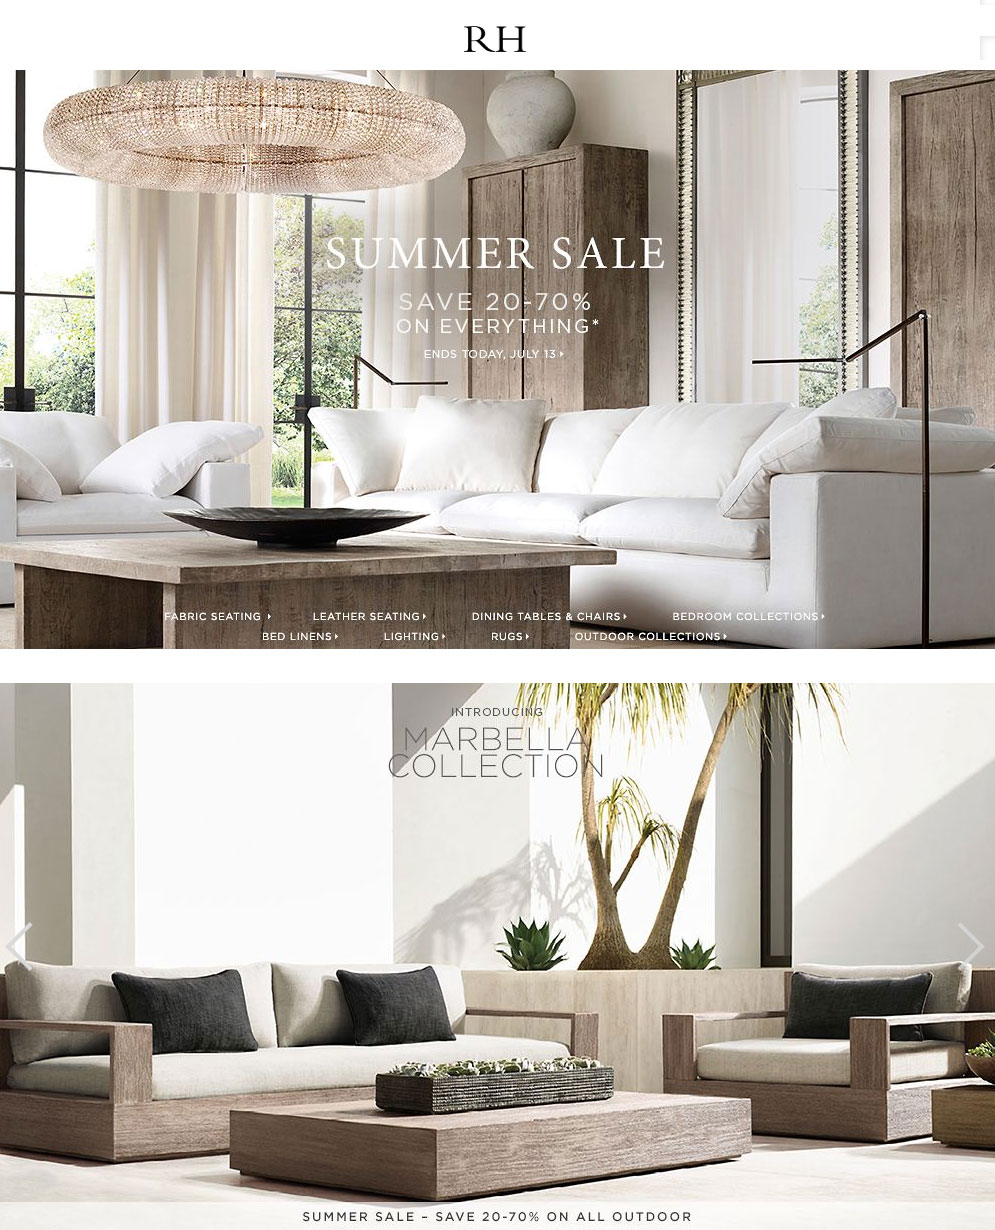 Restoration Hardware Coupon June 2017 20-70% off everything today at Restoration Hardware, ditto online